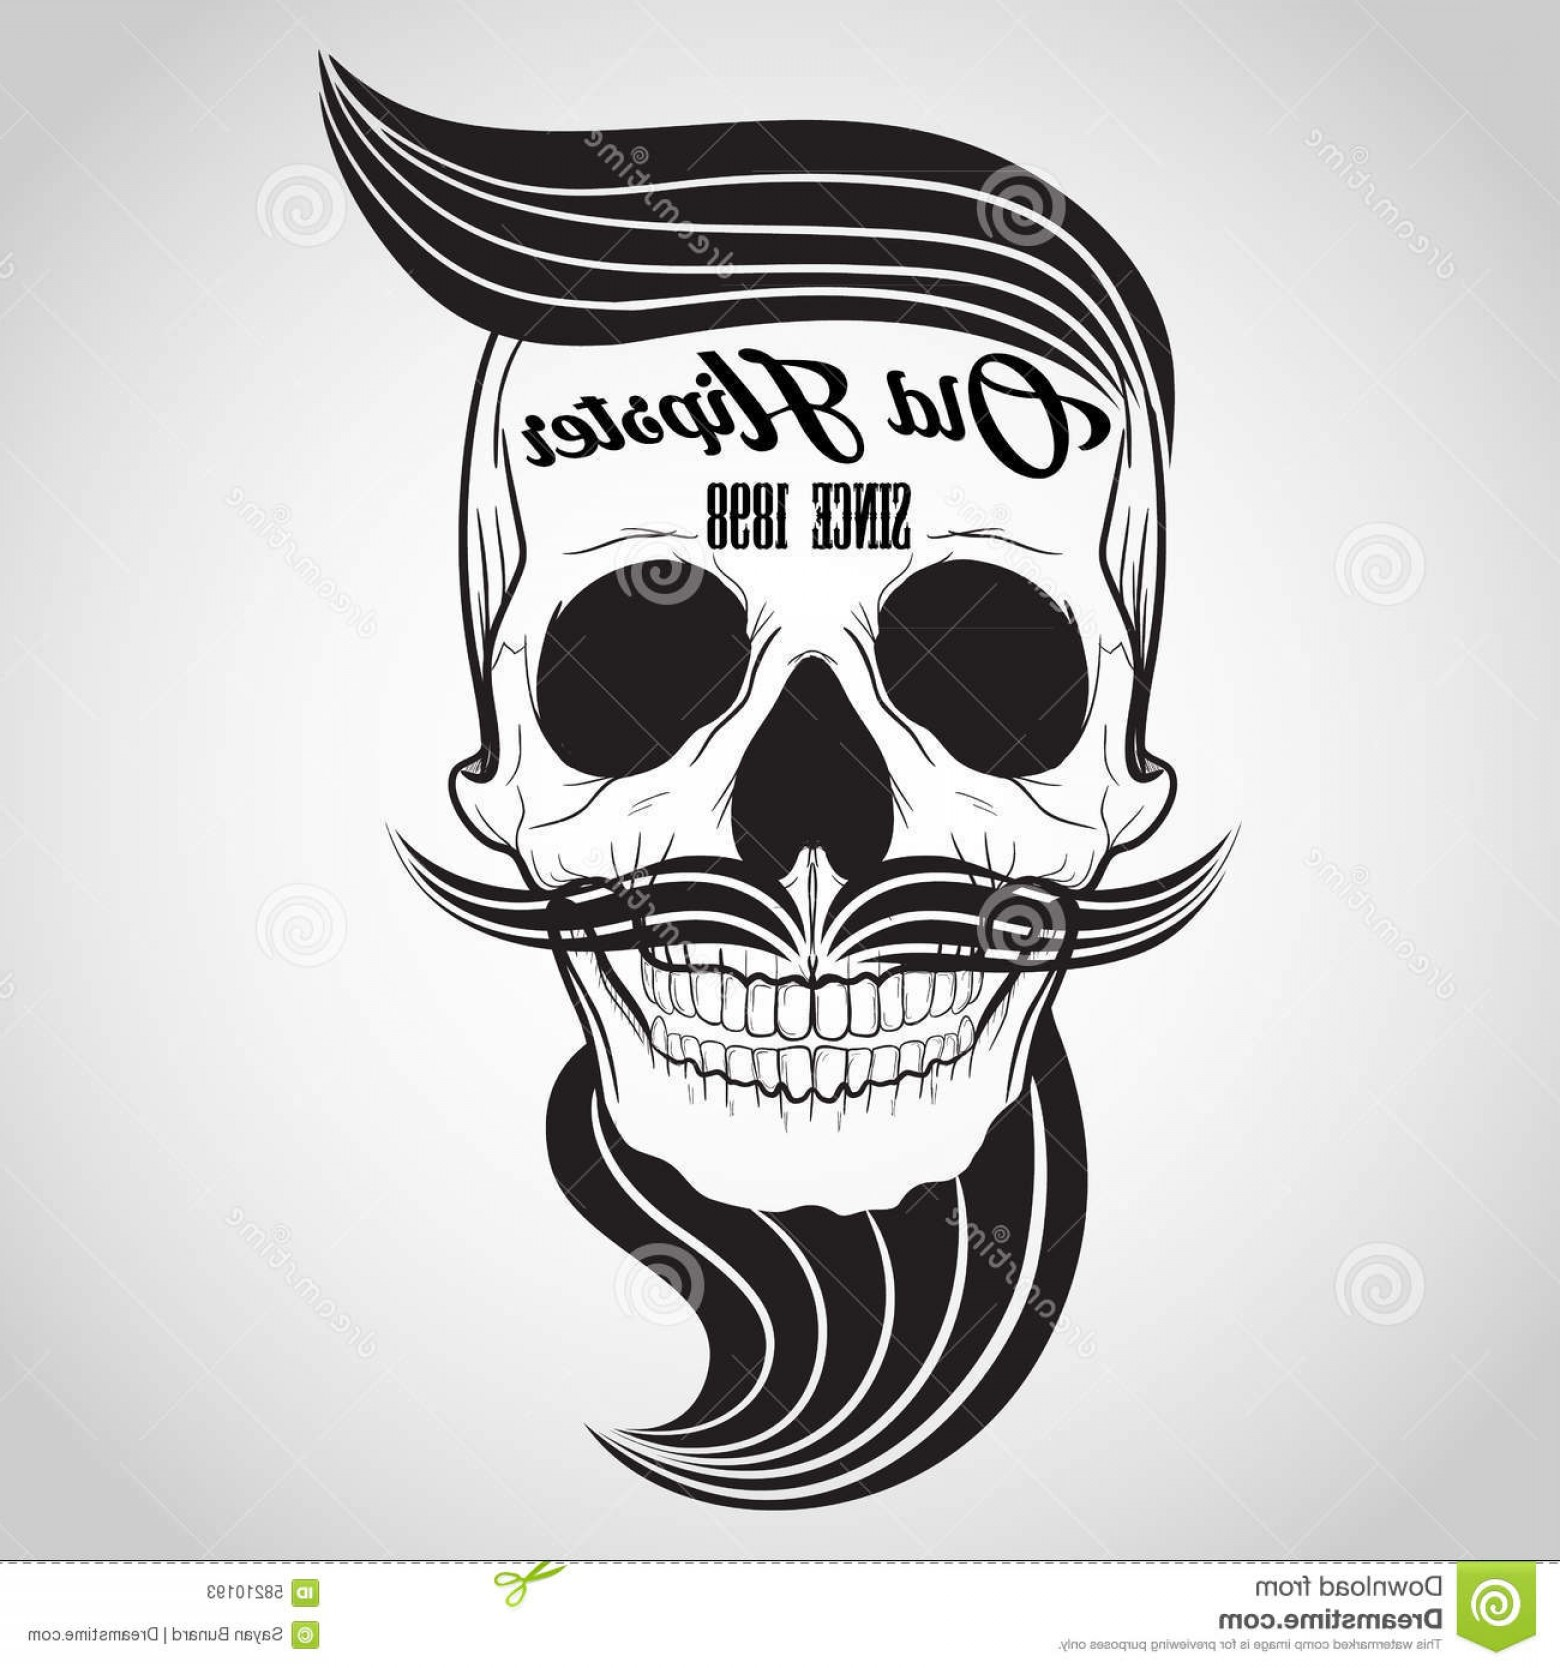 His And Hers Skulls Vector: Stock Illustration Hipster Skull Logo Vector Banner Symbol Image